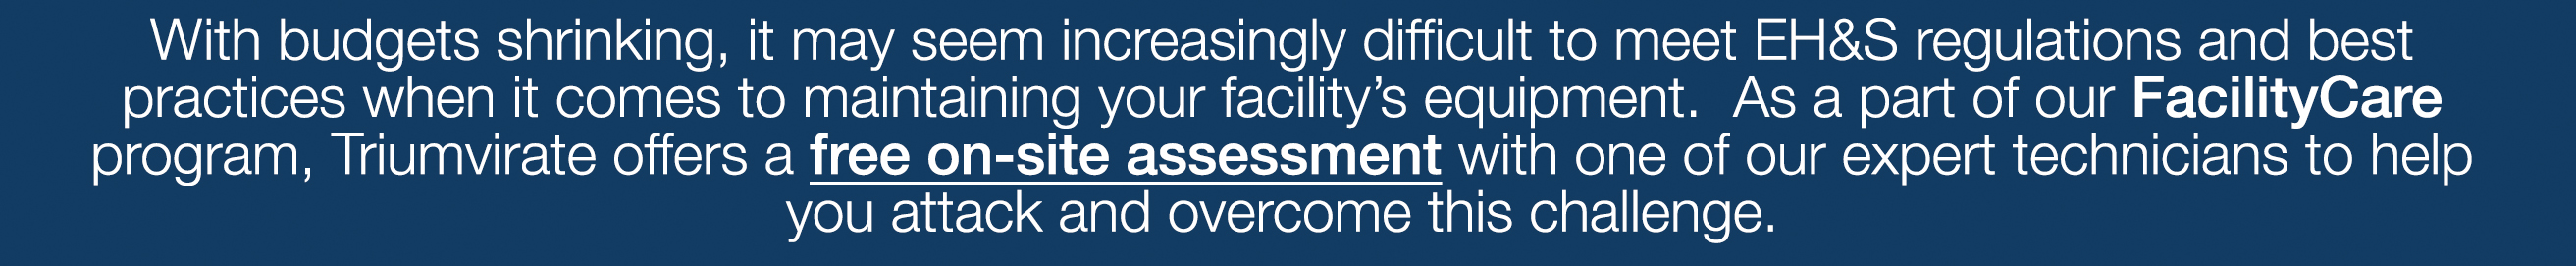 /With budgets shrinking it may seem increasingly difficult to meet EH&S regulations and best practices when it comes to maintaining your facility equipment. As part of our FacilityCare program, Triumivrate offers a free on-site assessment with one of our expert technicians to help you attack and overcome this challenge.